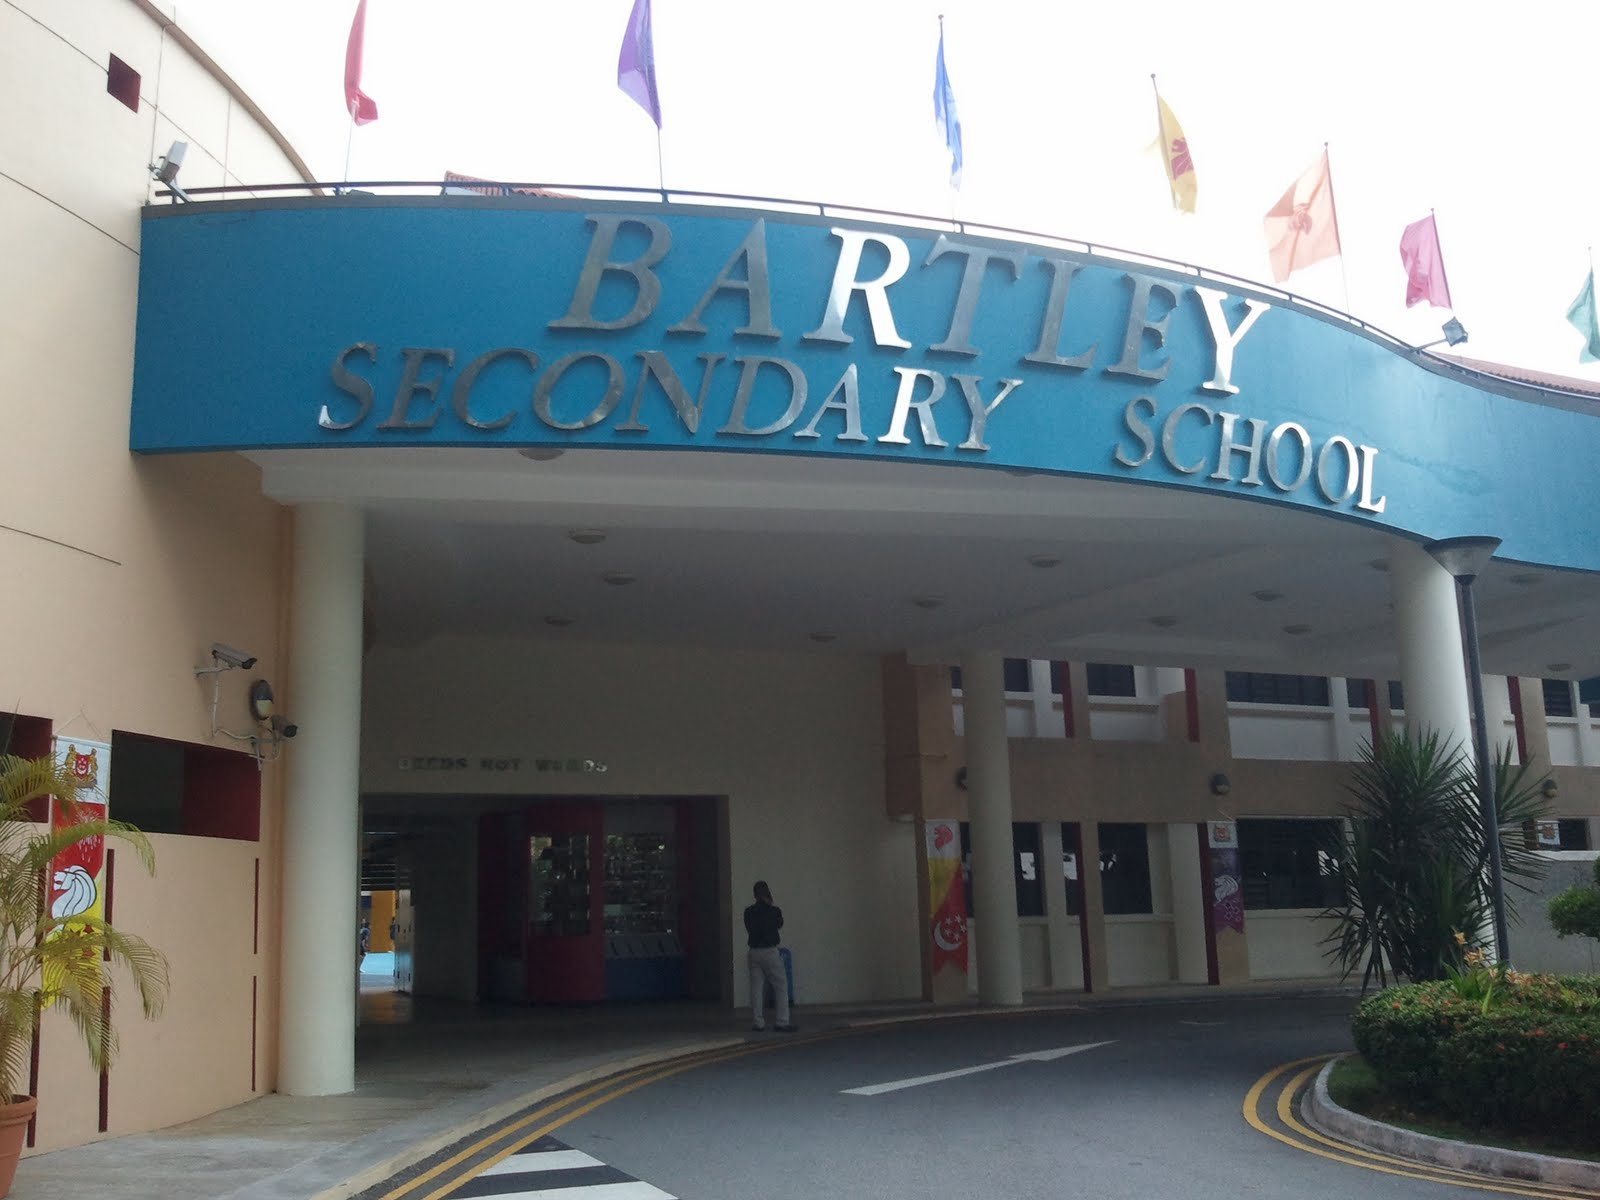 ICT in Schools: My Enhanced School Experience in Bartley Secondary ...